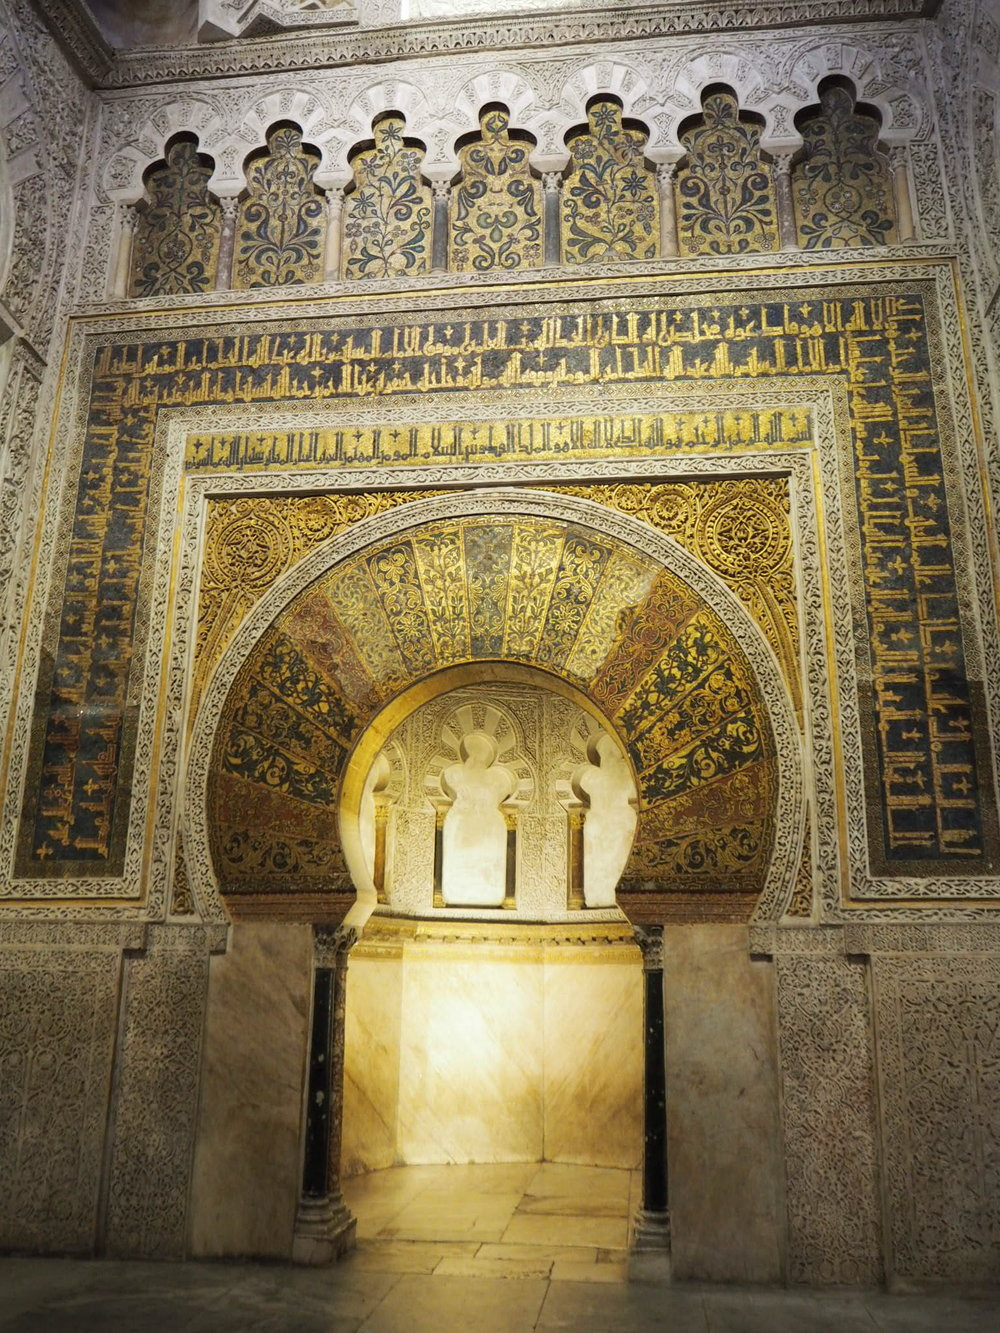 the mihrab, indicating the direction of mecca. most of the interior walls of the mezquita now play host to one of its 35 chapels.